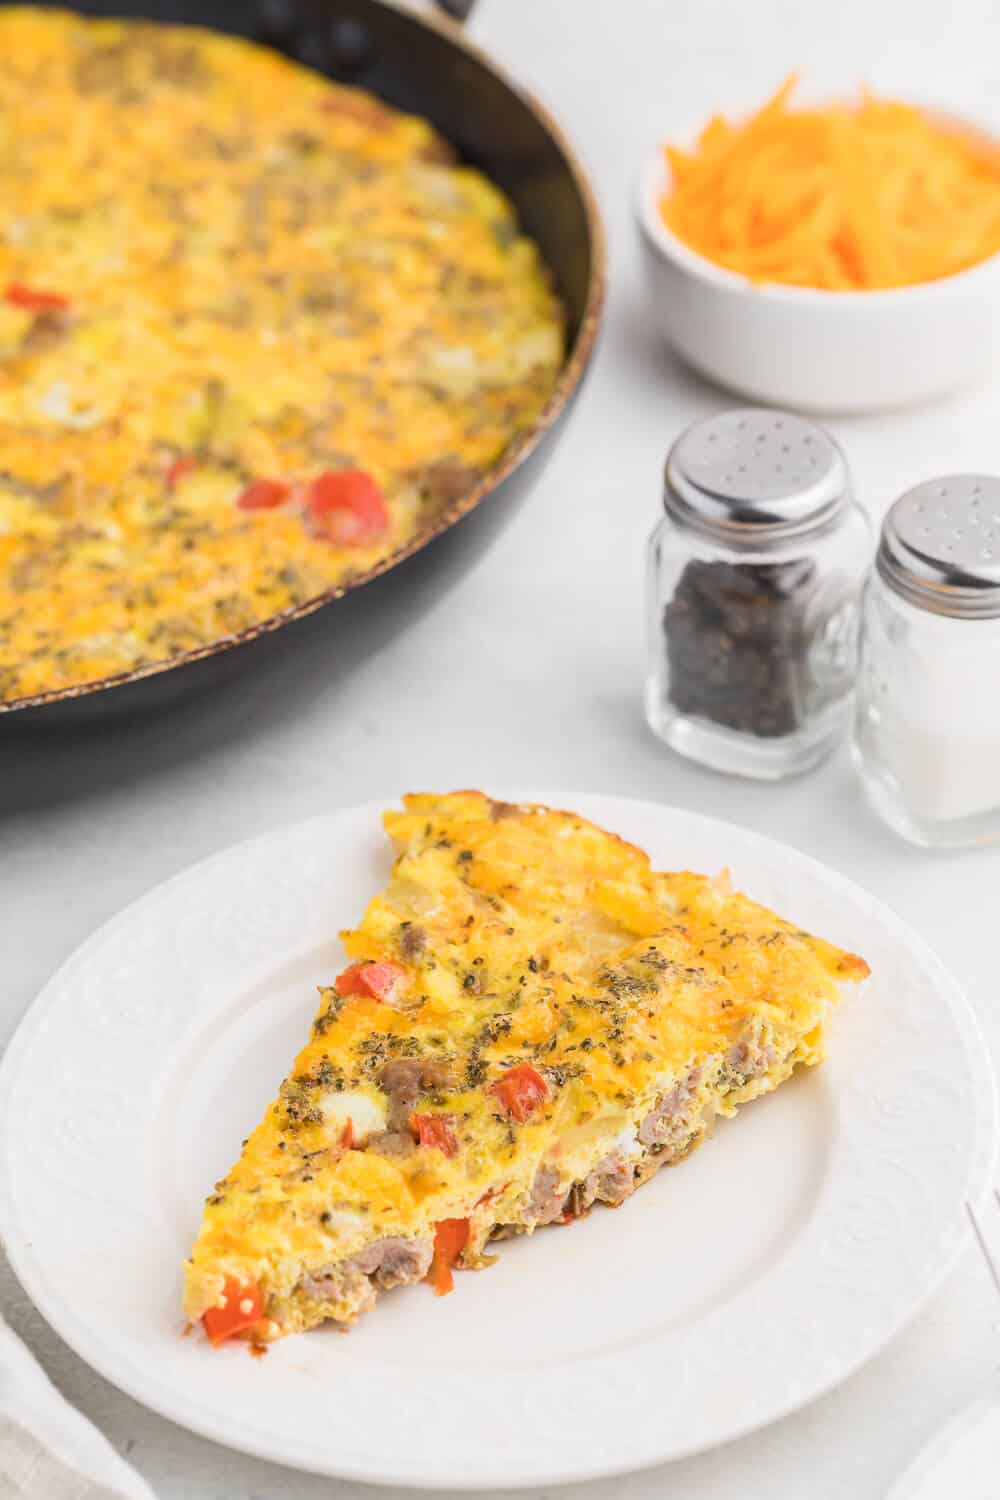 Sausage & Red Pepper Frittata - Sweet red peppers and savoury sausage are a delight together in this easy and delicious recipe. Served with a salad and fresh bread, it's the perfect quick weeknight meal!